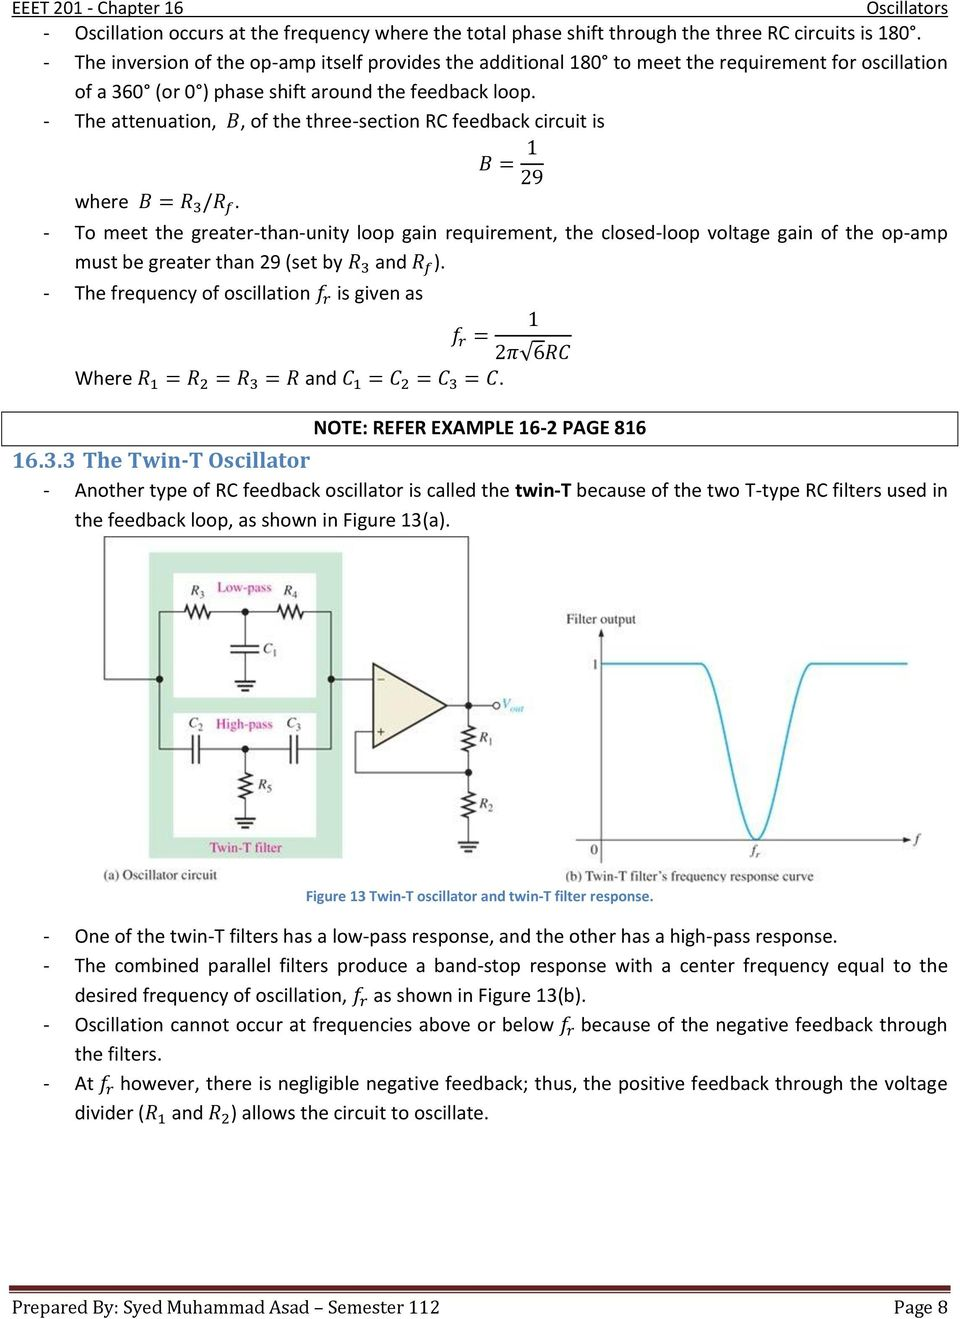 Chapter 16 Oscillators Pdf Phase Shift Oscillator Circuit Explanation Using Opamp Transistor The Attenuation Of Three Section Rc Feedback Is Where